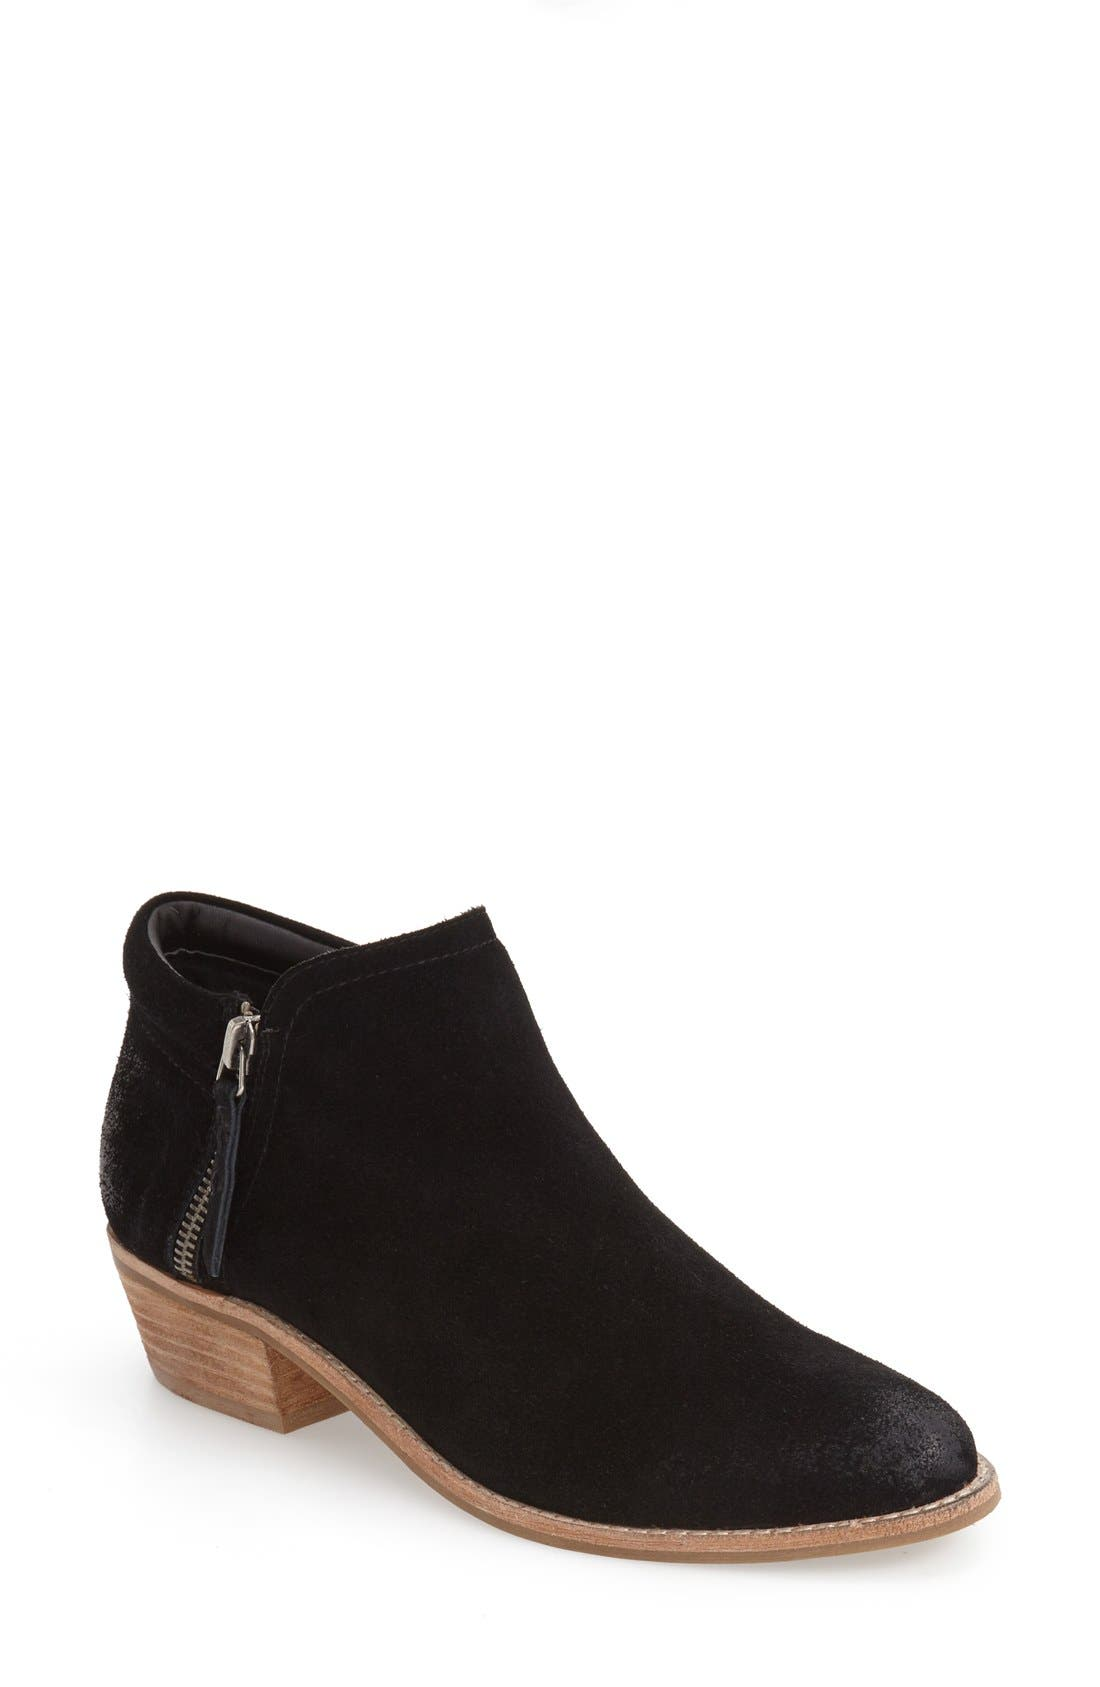 STEVE MADDEN, 'Tobii' Bootie, Main thumbnail 1, color, 006